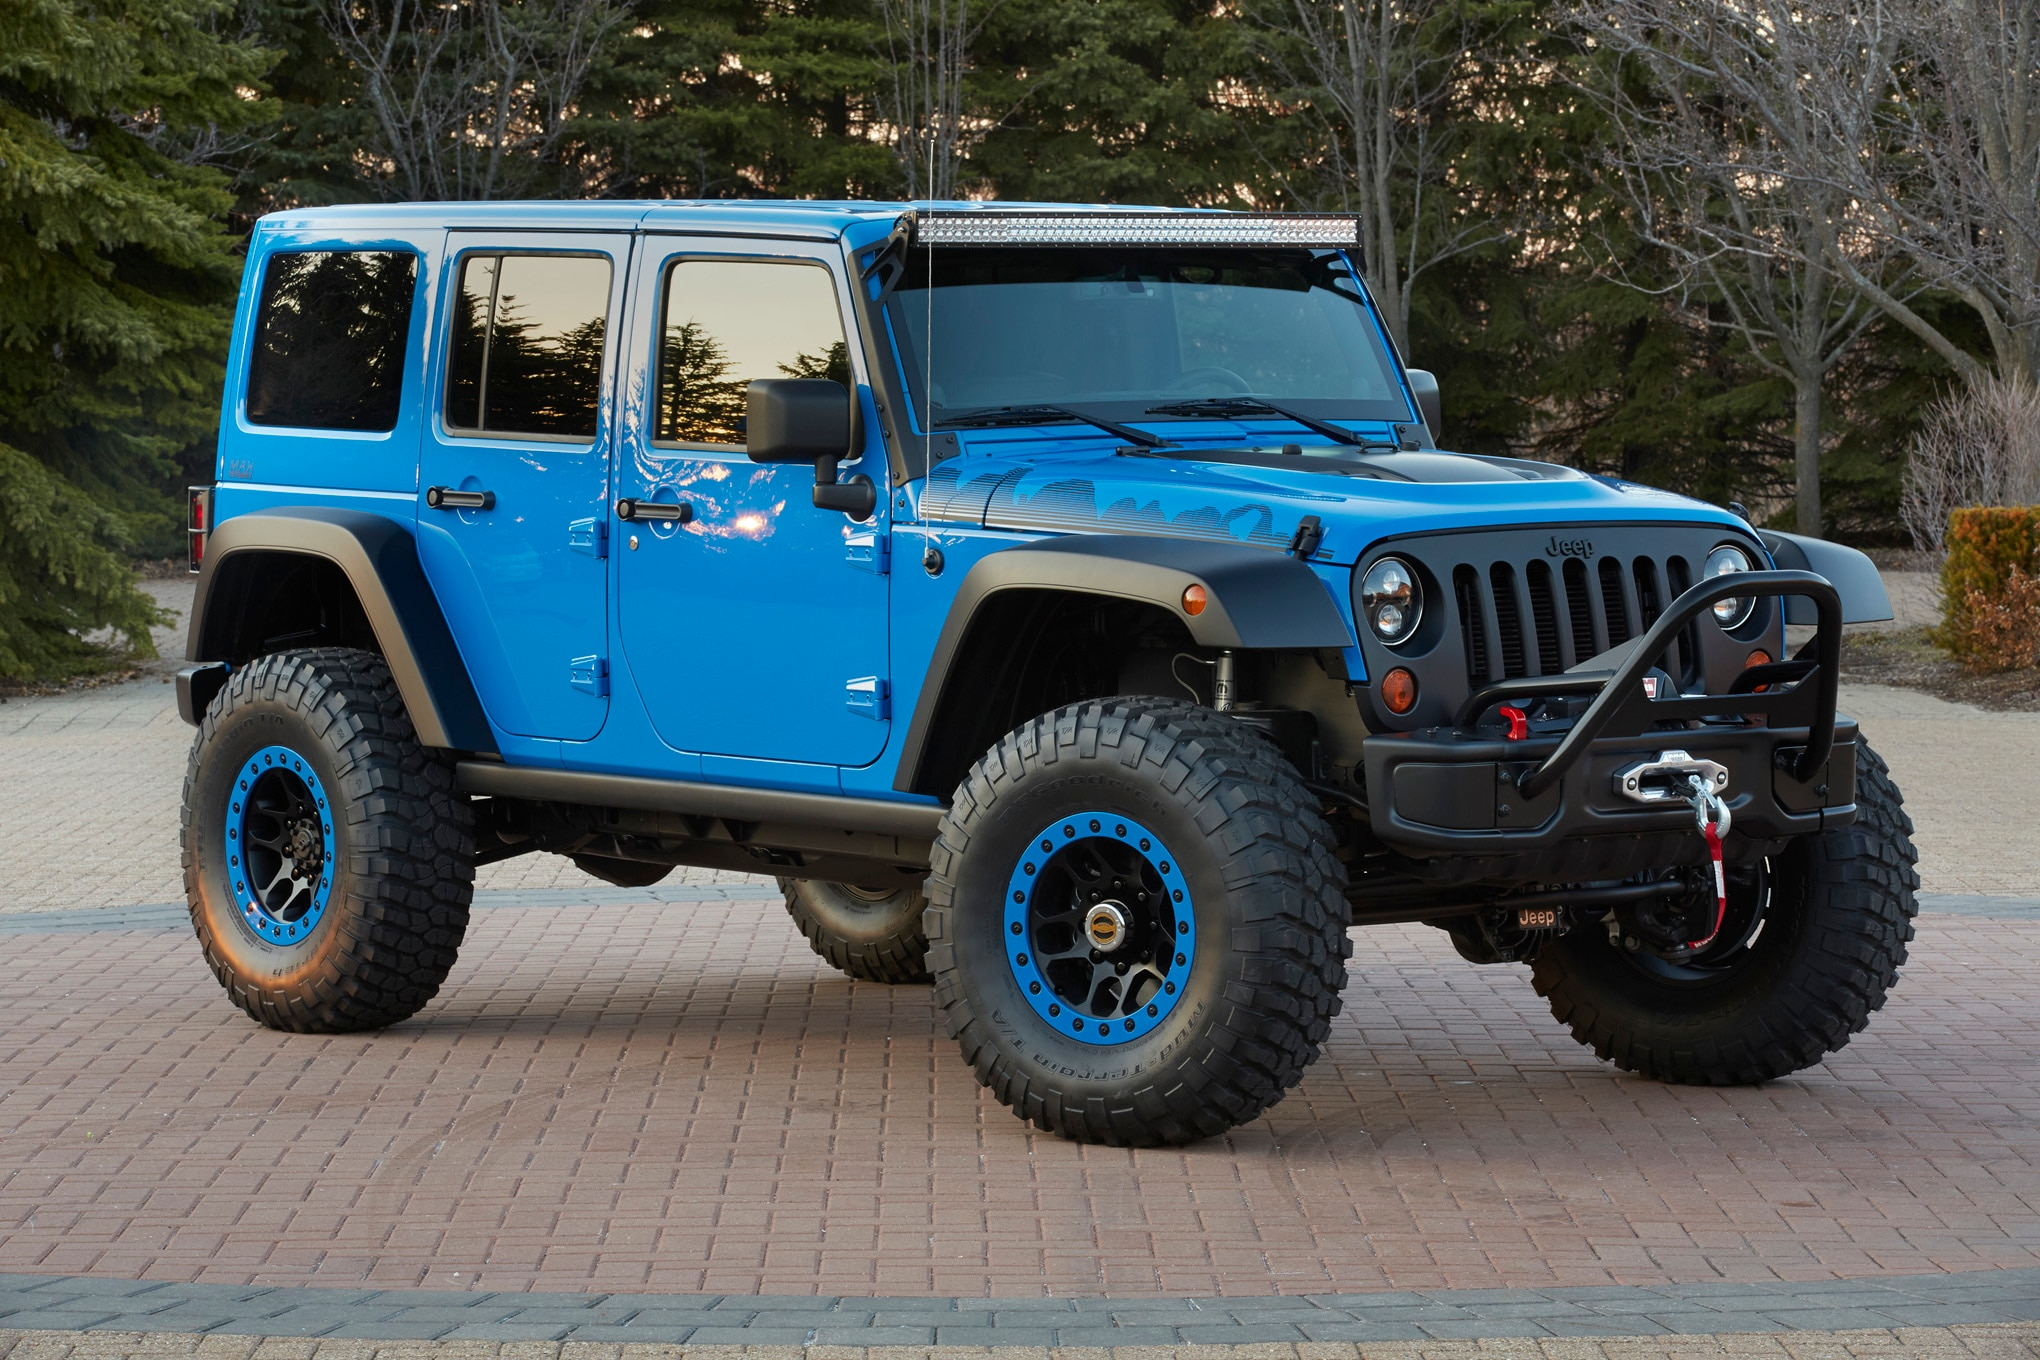 Jeep Wrangler Maximum Performance Concept front three quarters